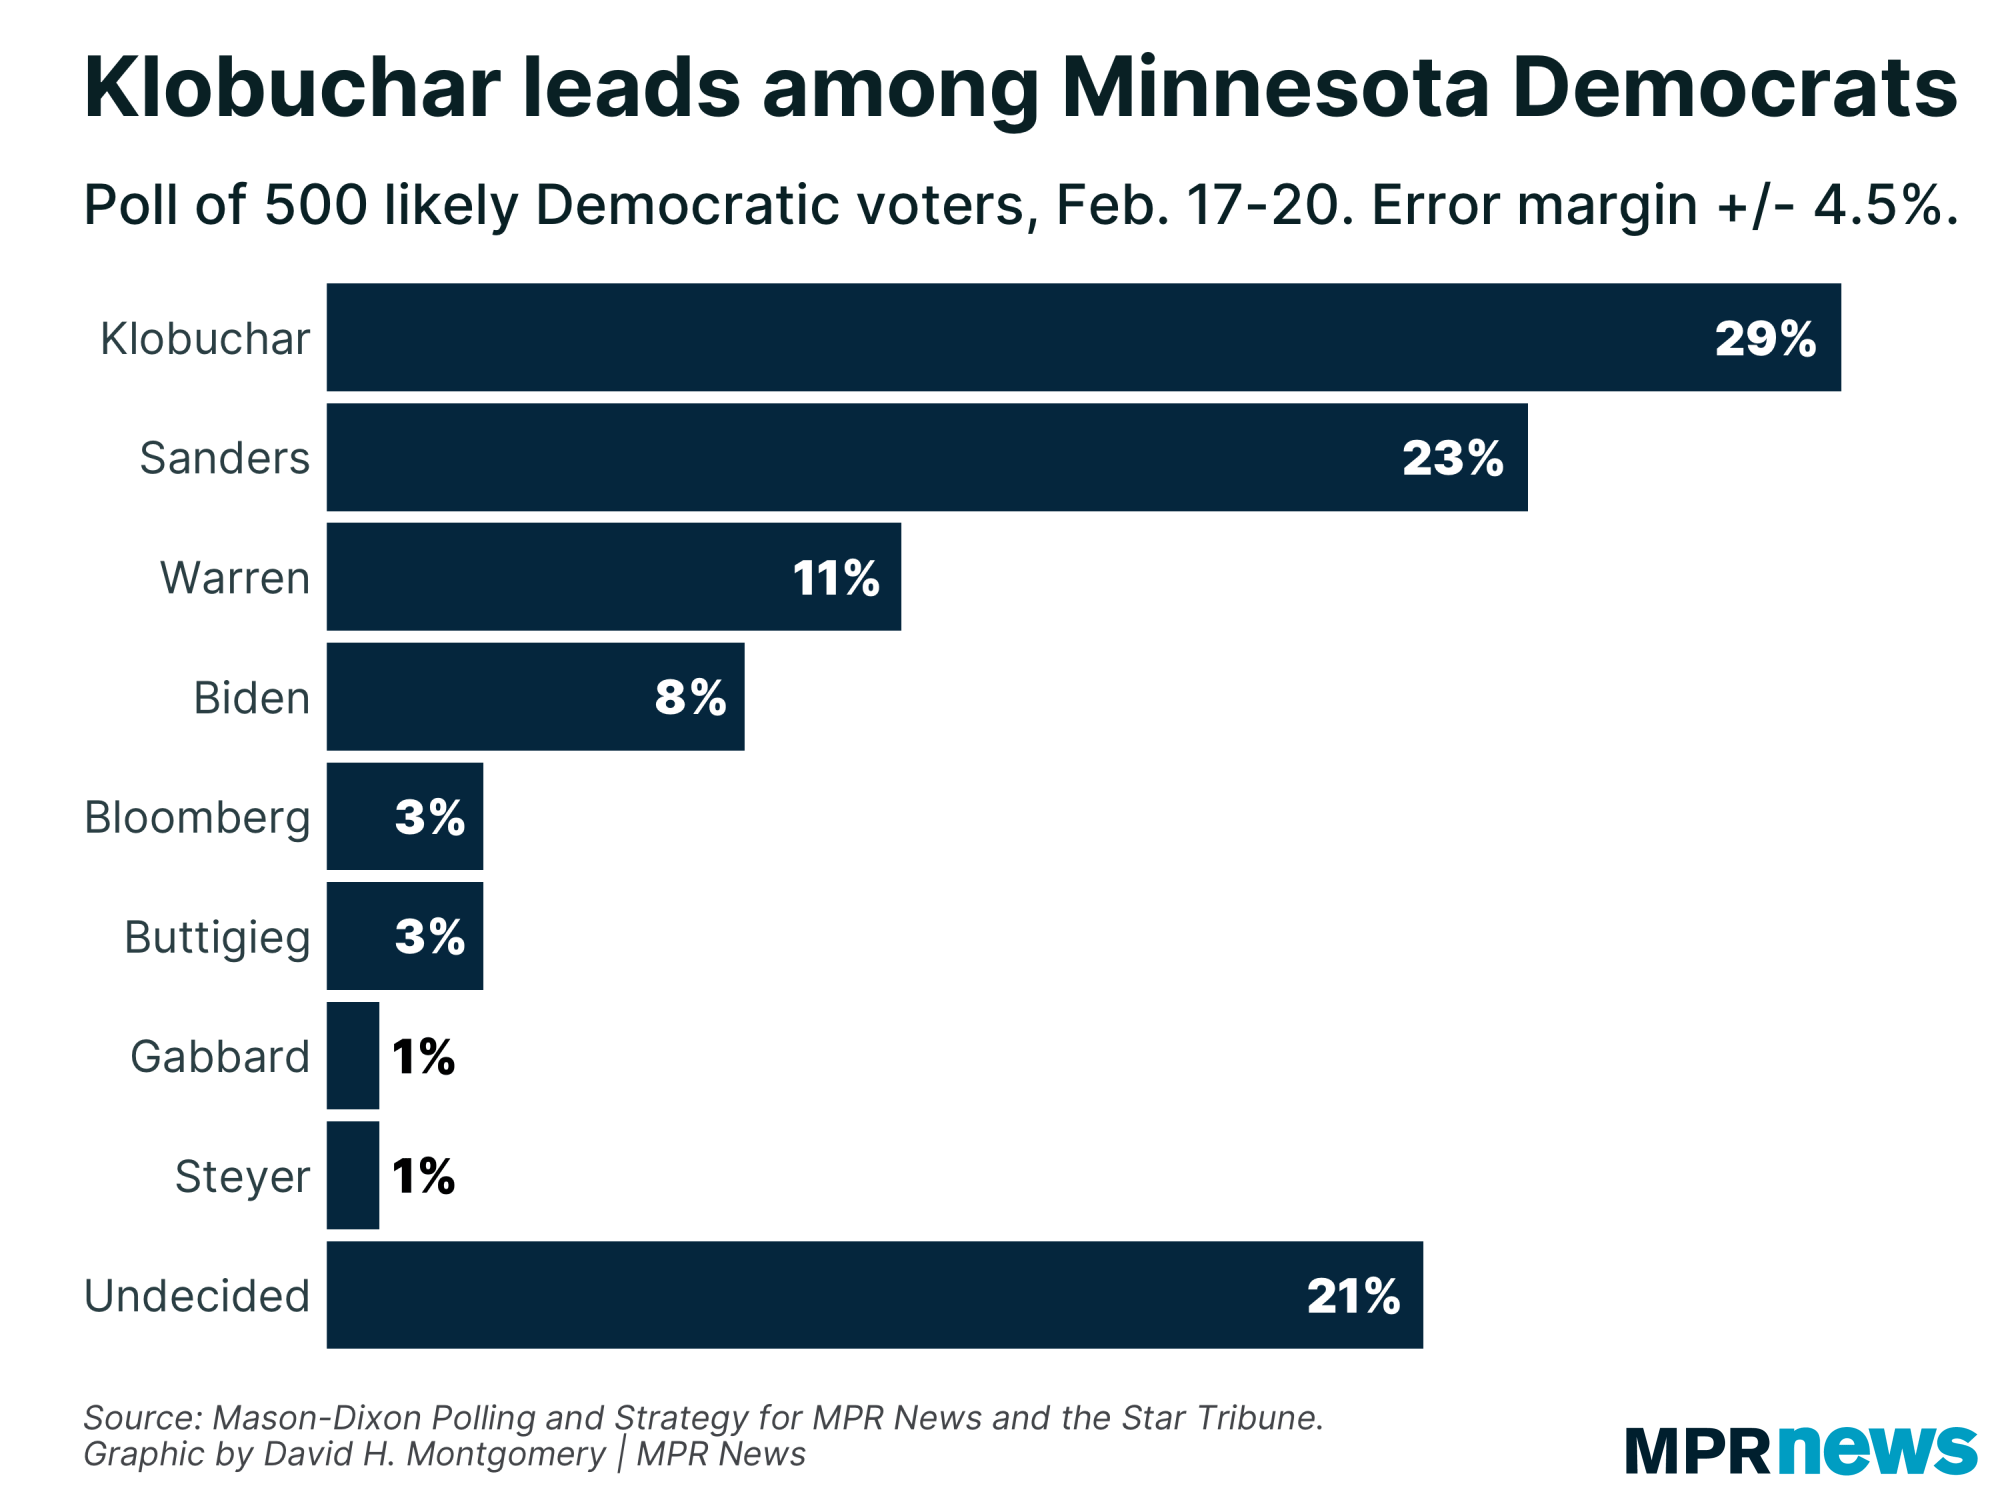 Amy Klobuchar leads among Minnesota Democrats in the presidential primary.